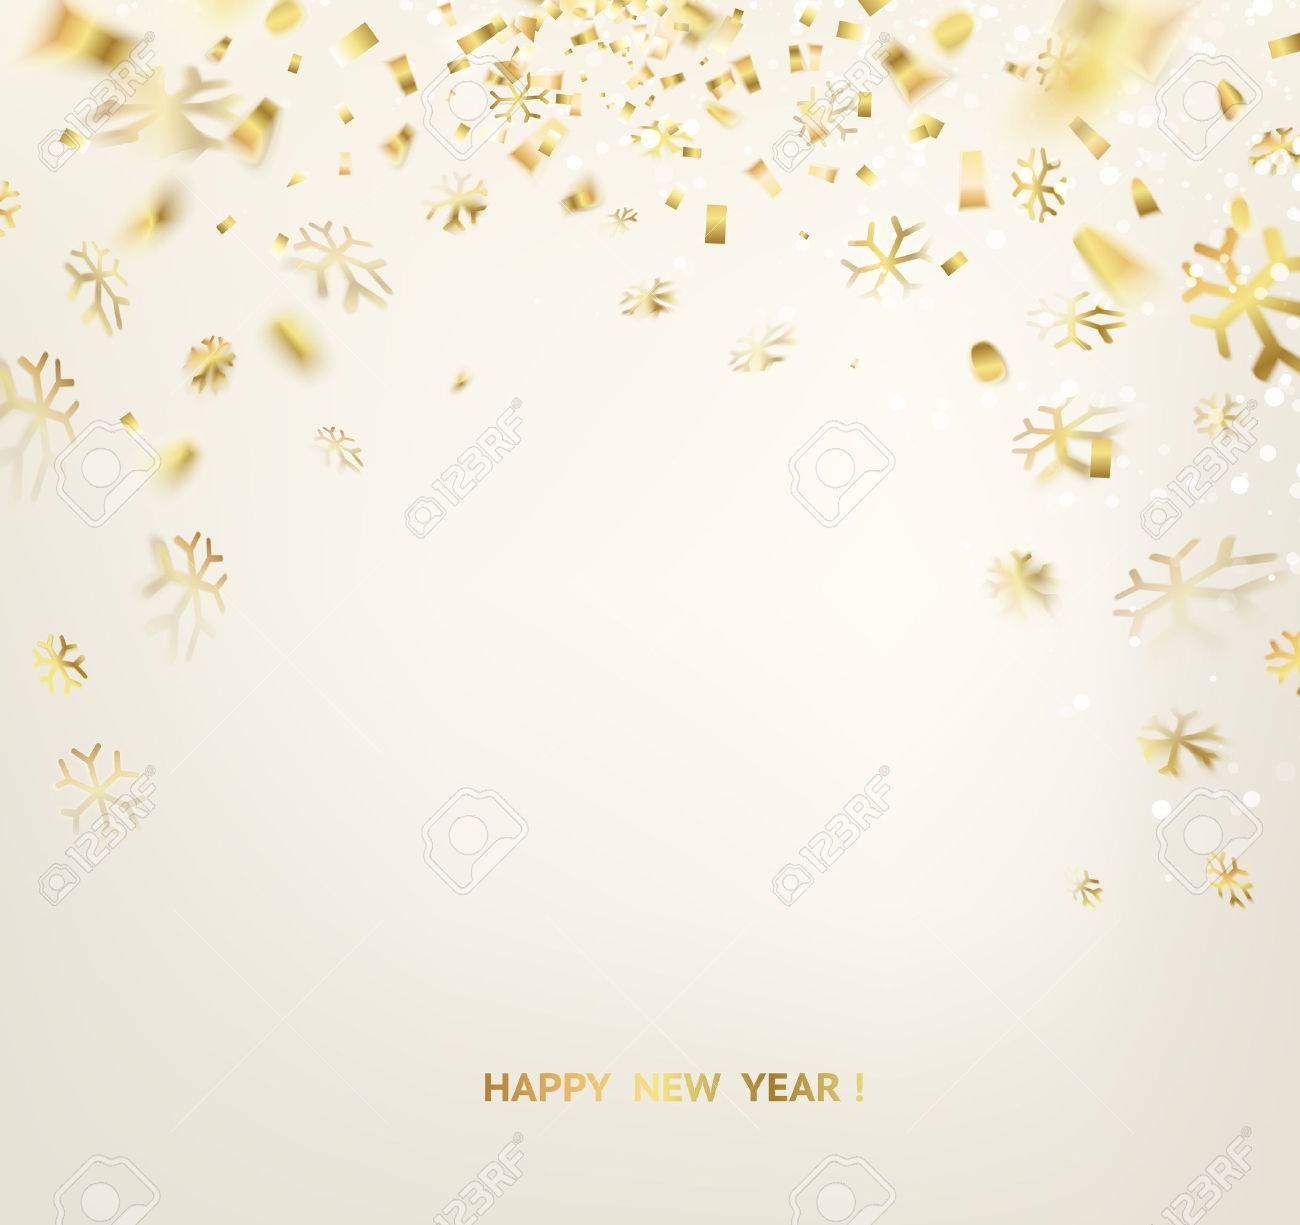 happy new year card template over gray background with golden